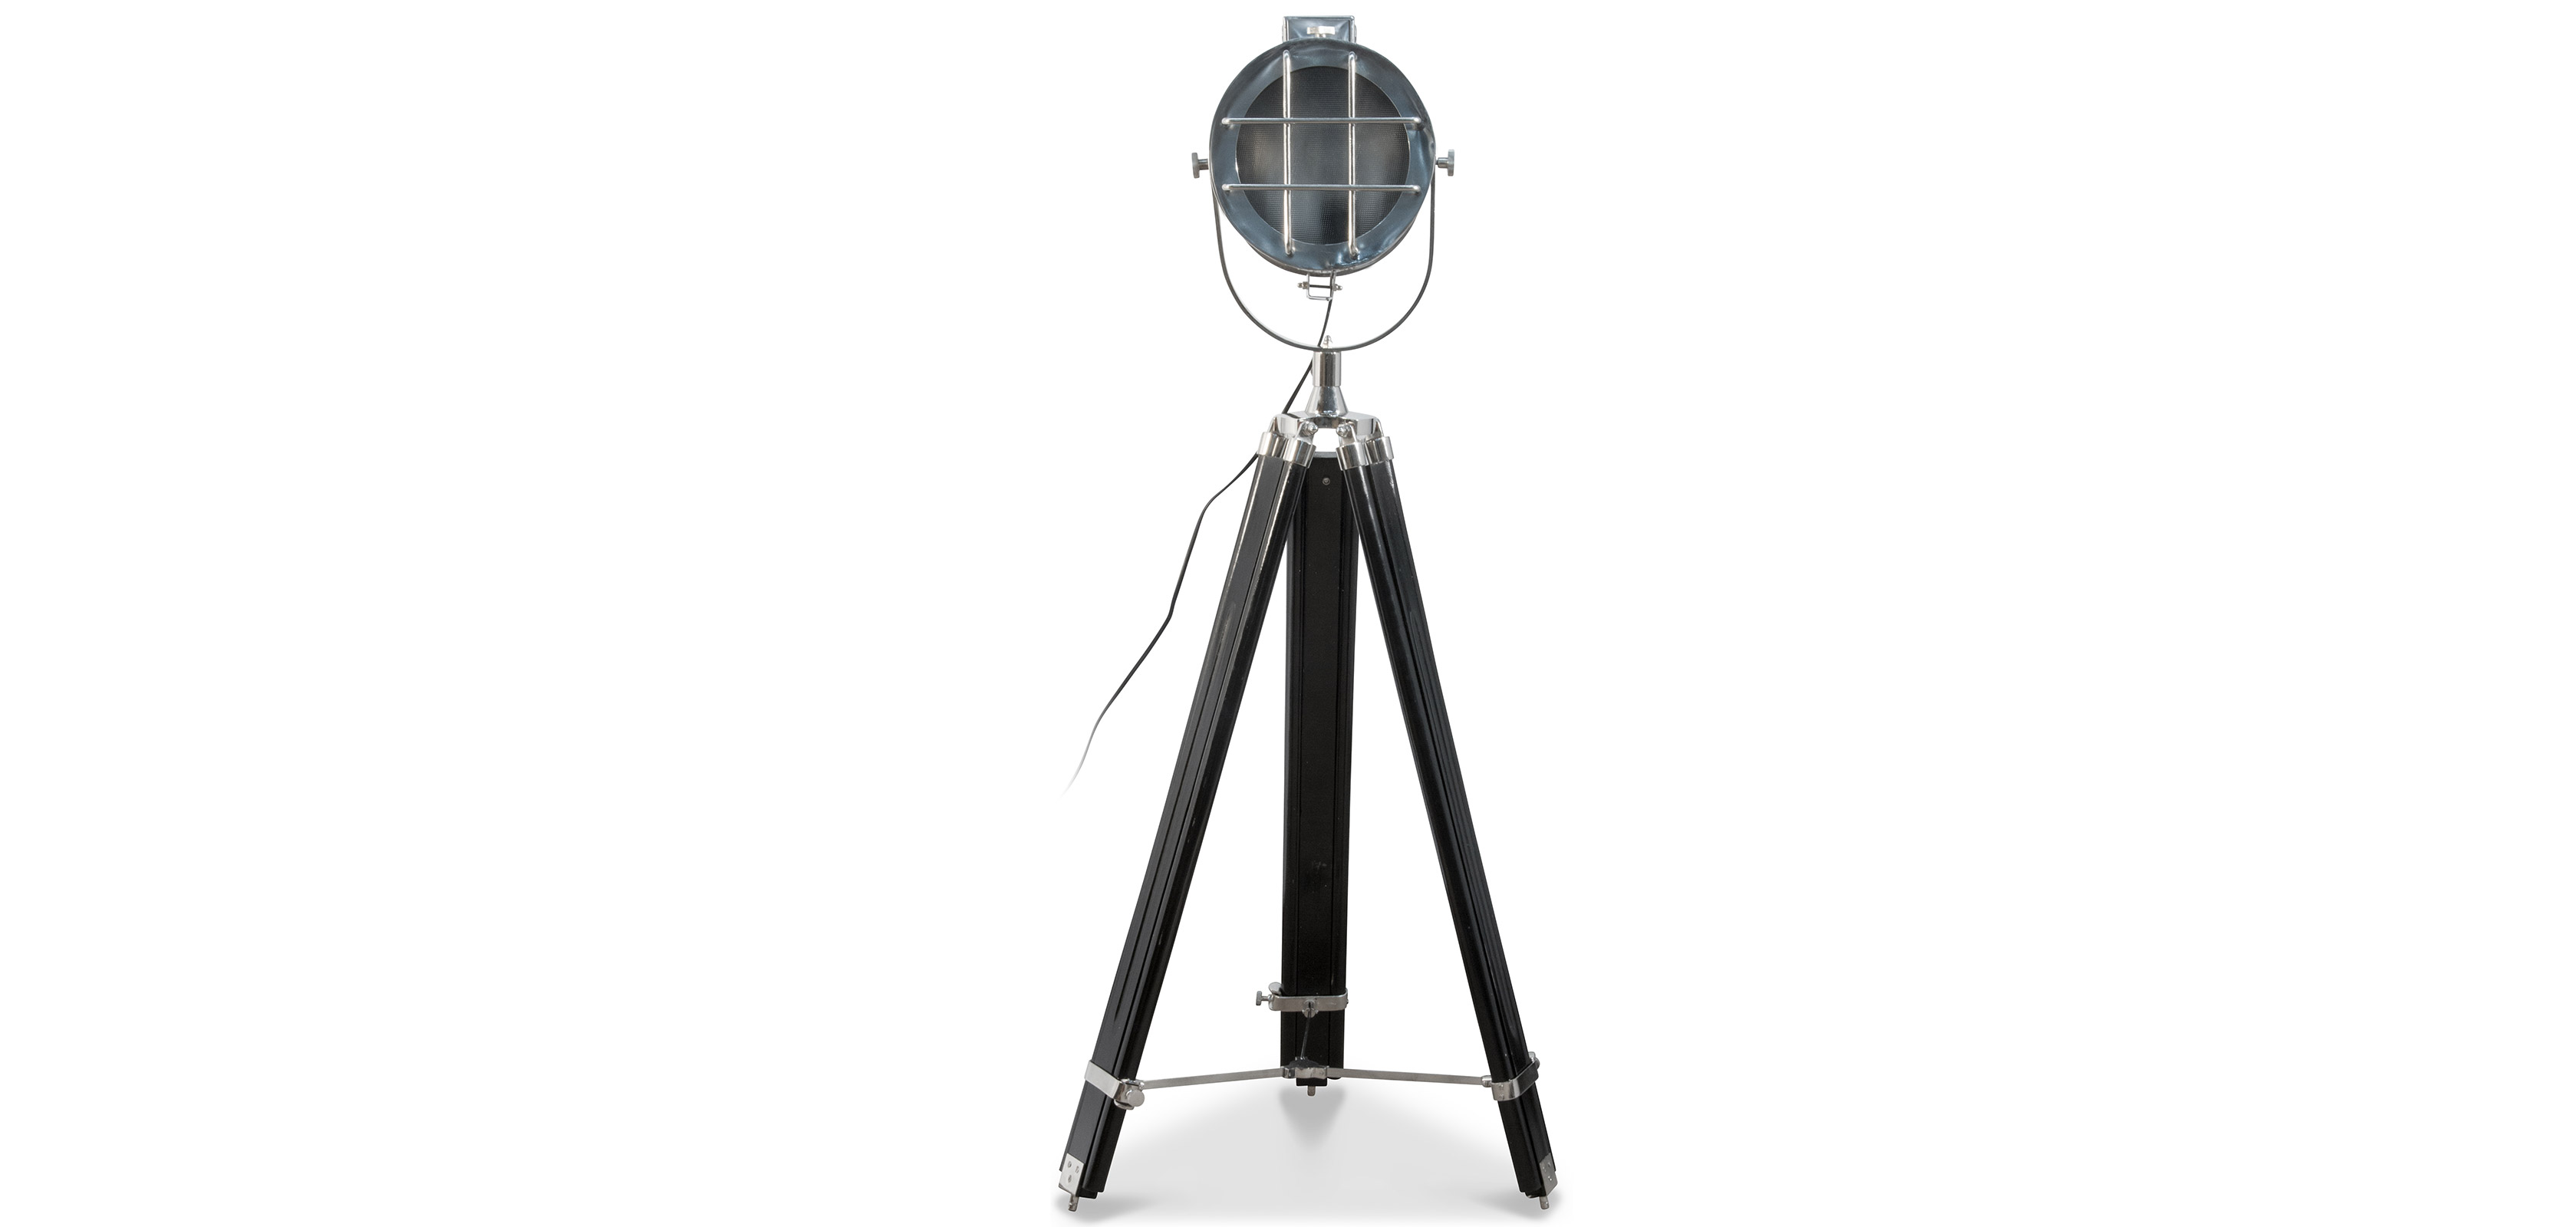 Vintage nautical tripod projector floor lamp design stainless vintage nautical tripod projector floor lamp design stainless steel and wood black height adjustable mozeypictures Images